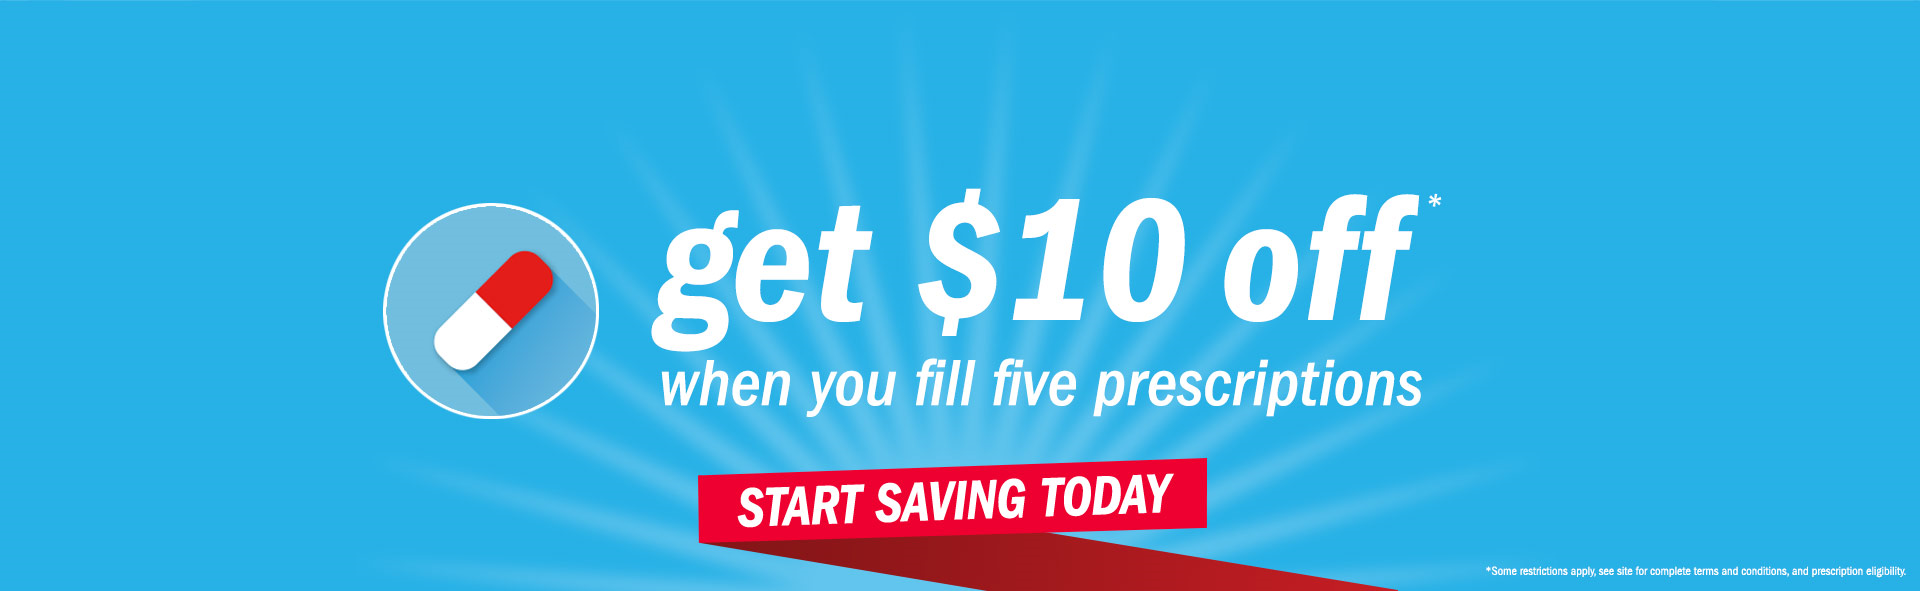 meijer mperks pharmacy offers when you buy prescriptions.